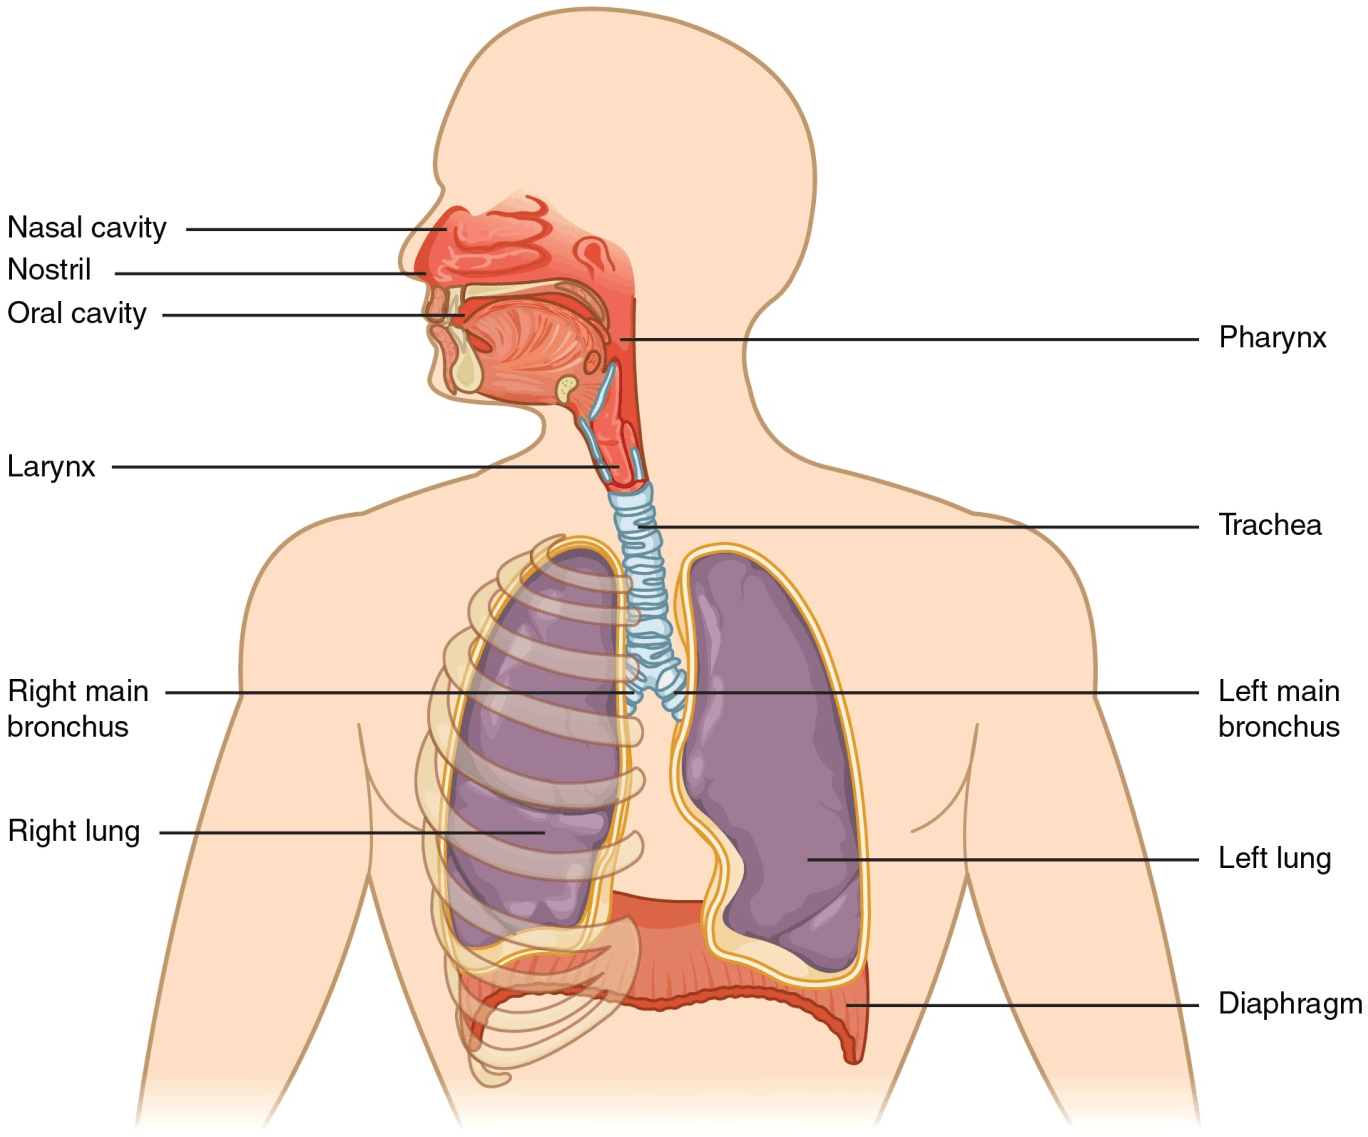 Image of the respiratory system in human